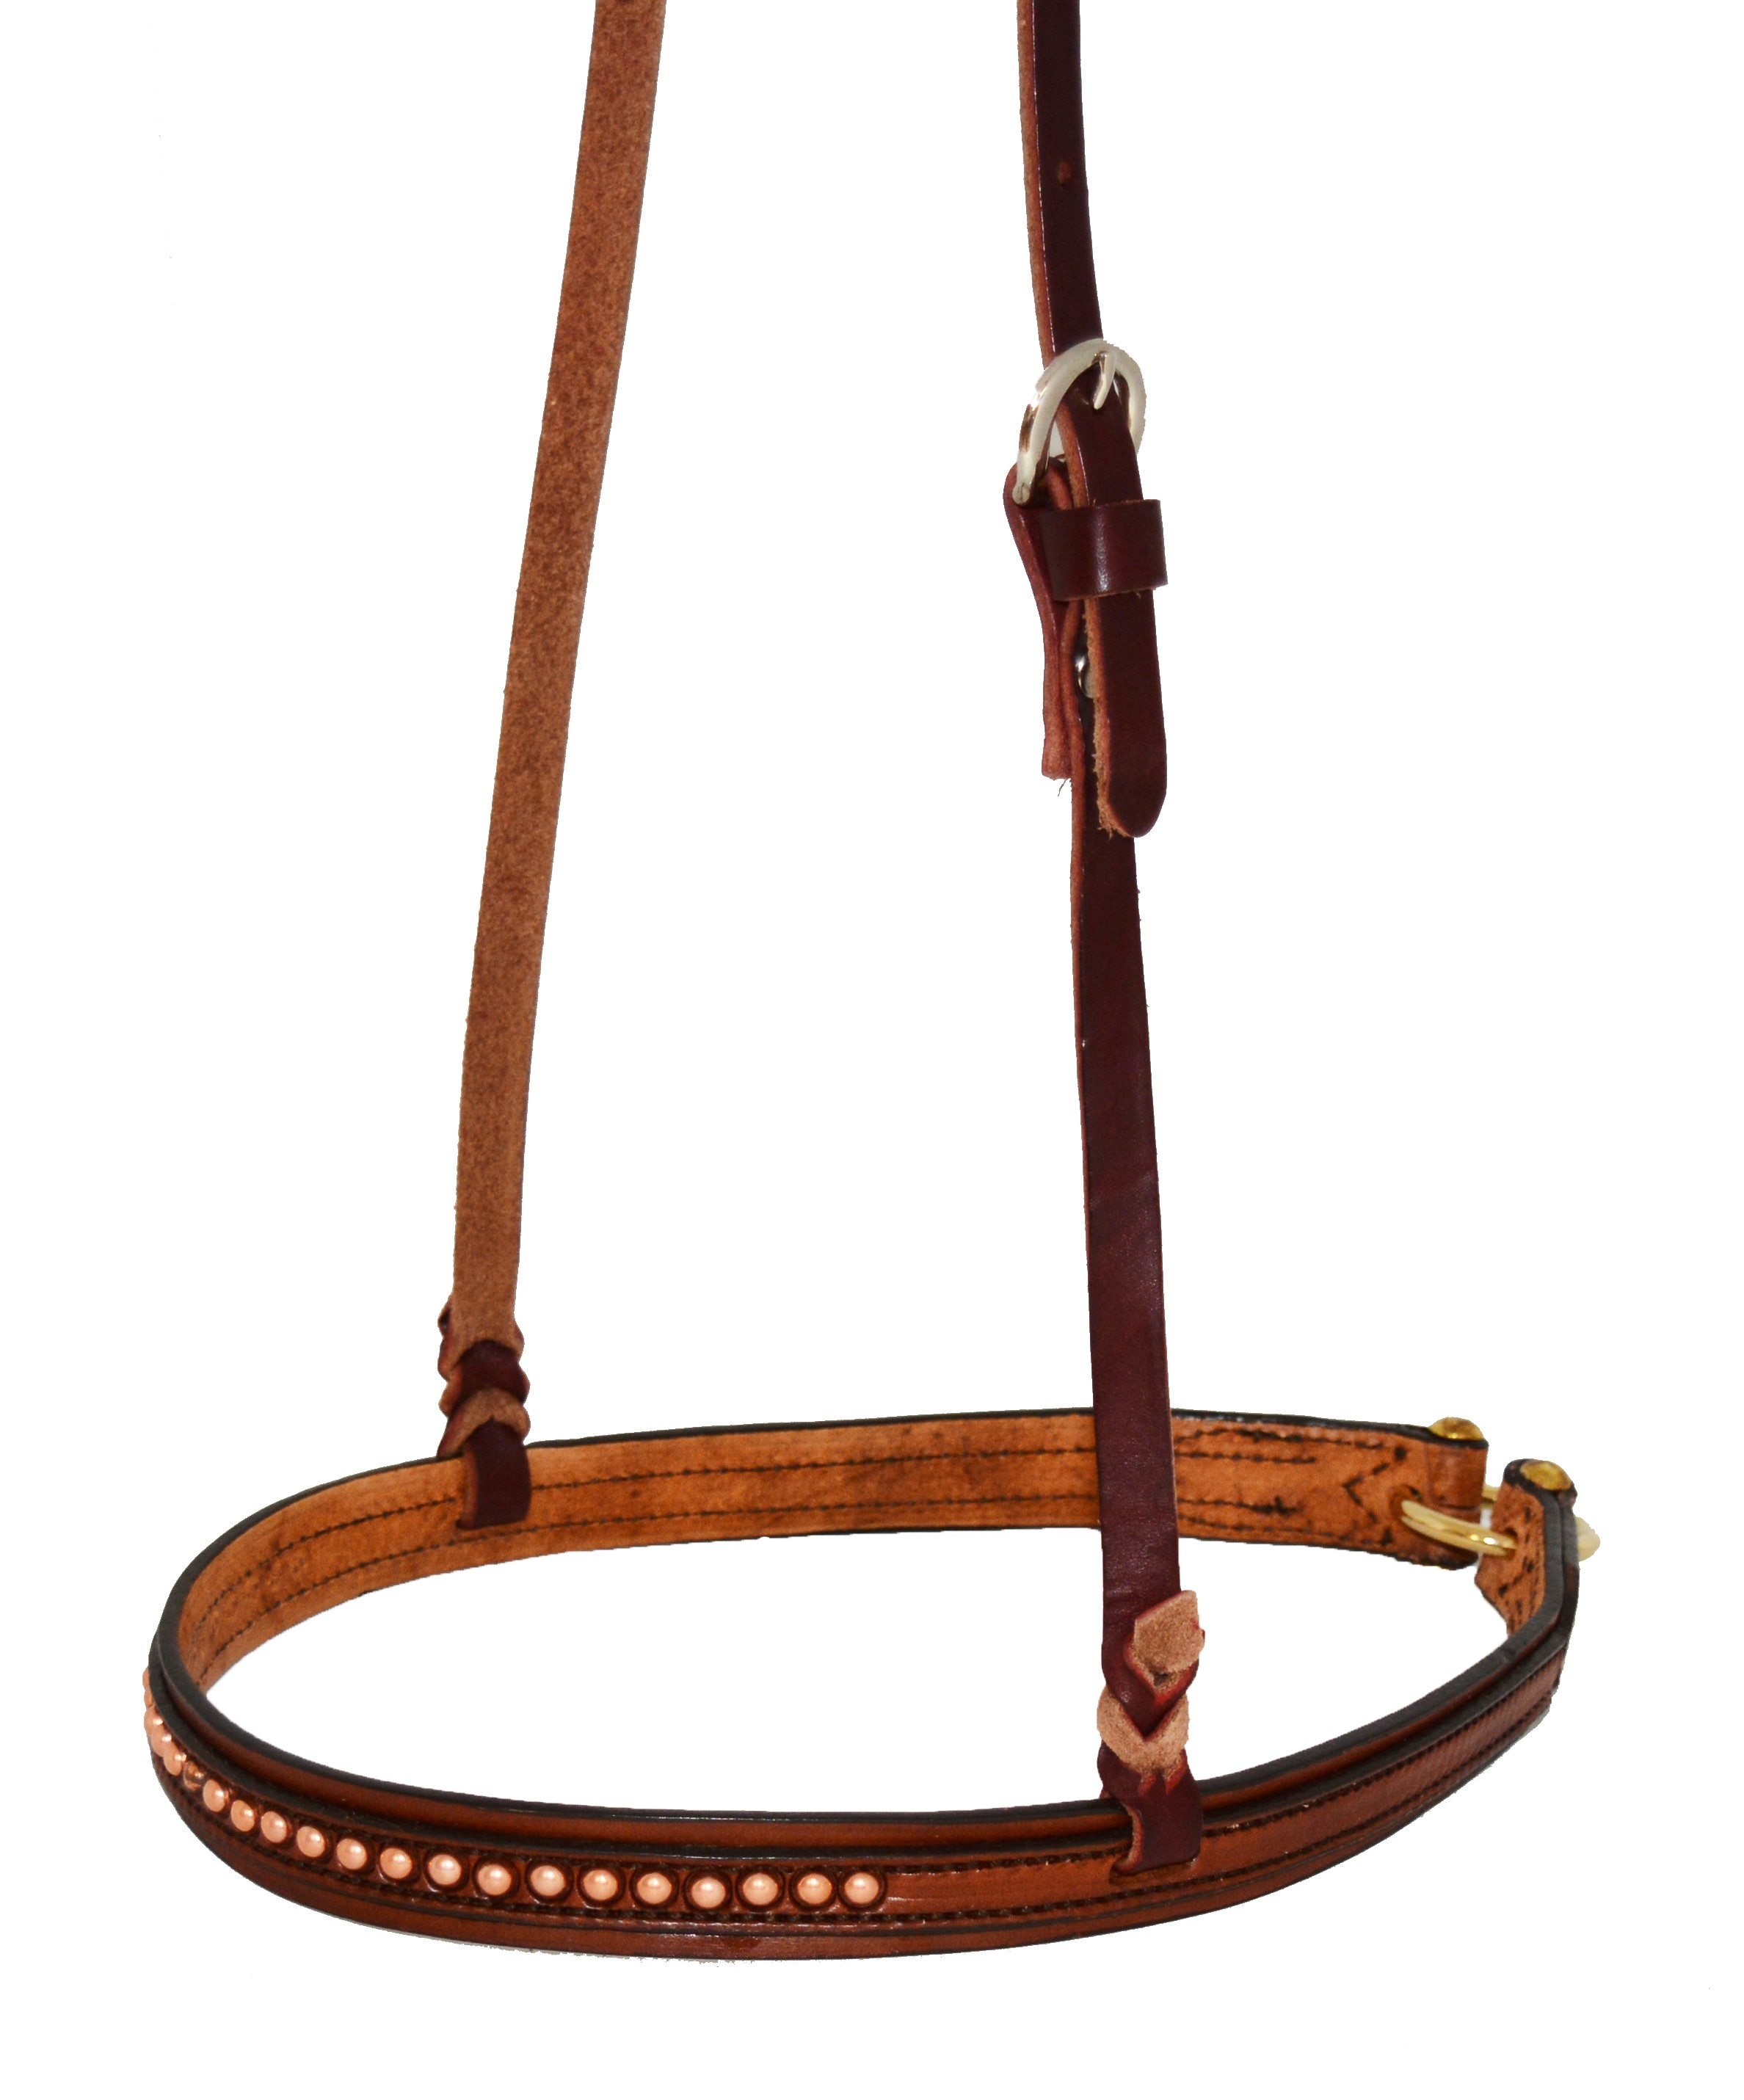 2000-TCP noseband toast leather w/ copper spots.